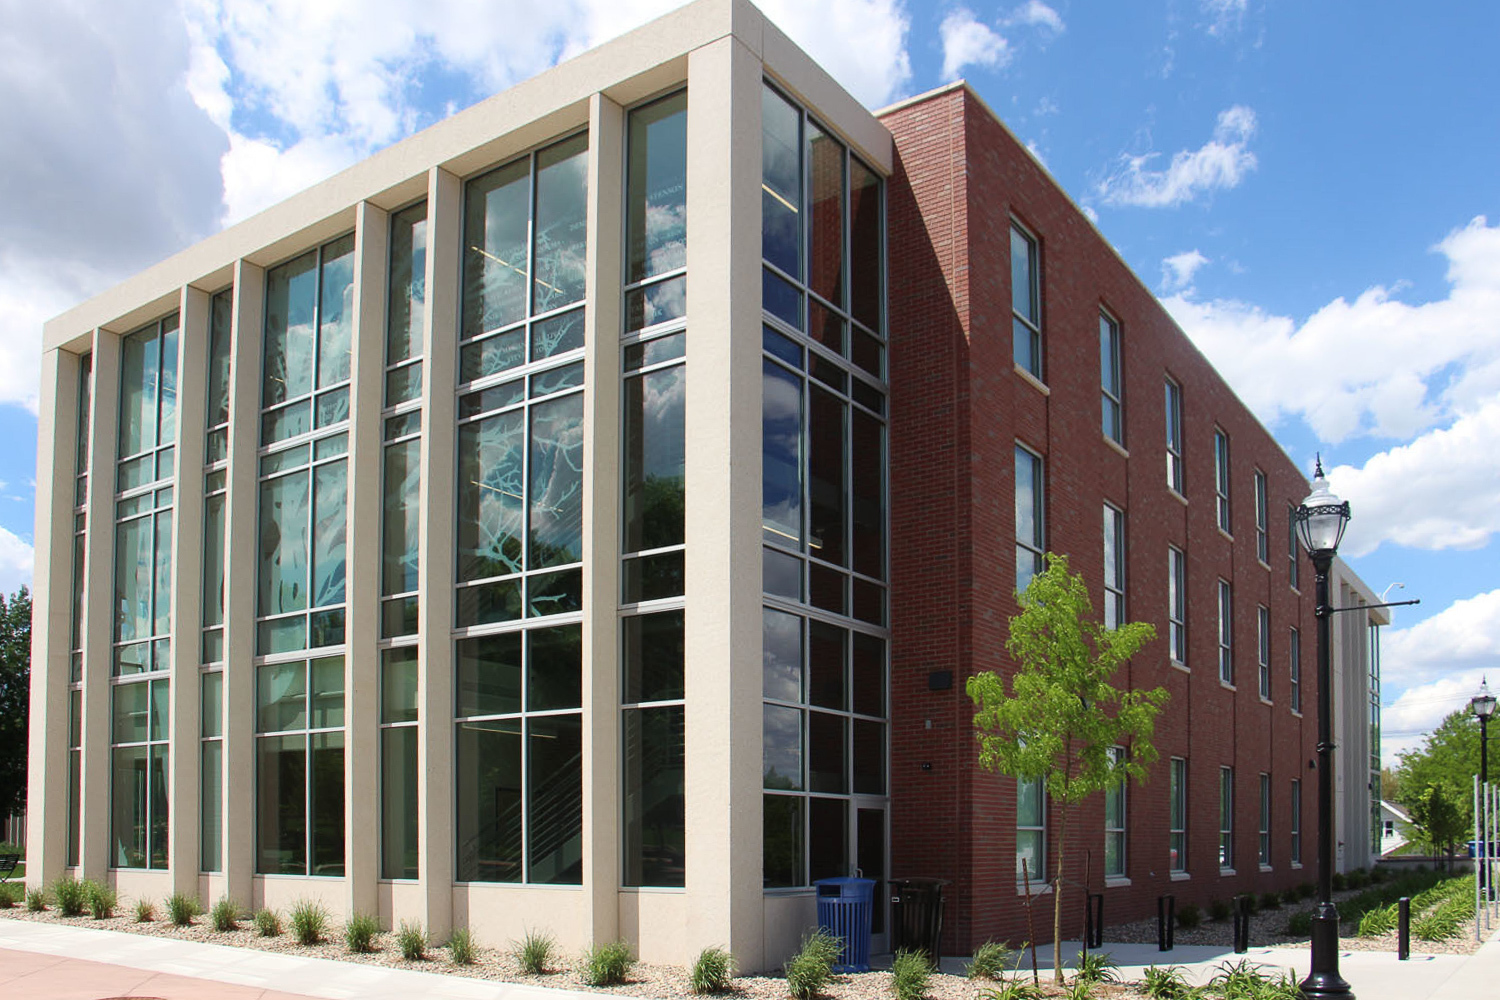 A mixture of glass and precast creates a unique facade at Benedetto Hall in Sioux Falls, SD. Gage Brothers provided the precast structural components for the project.